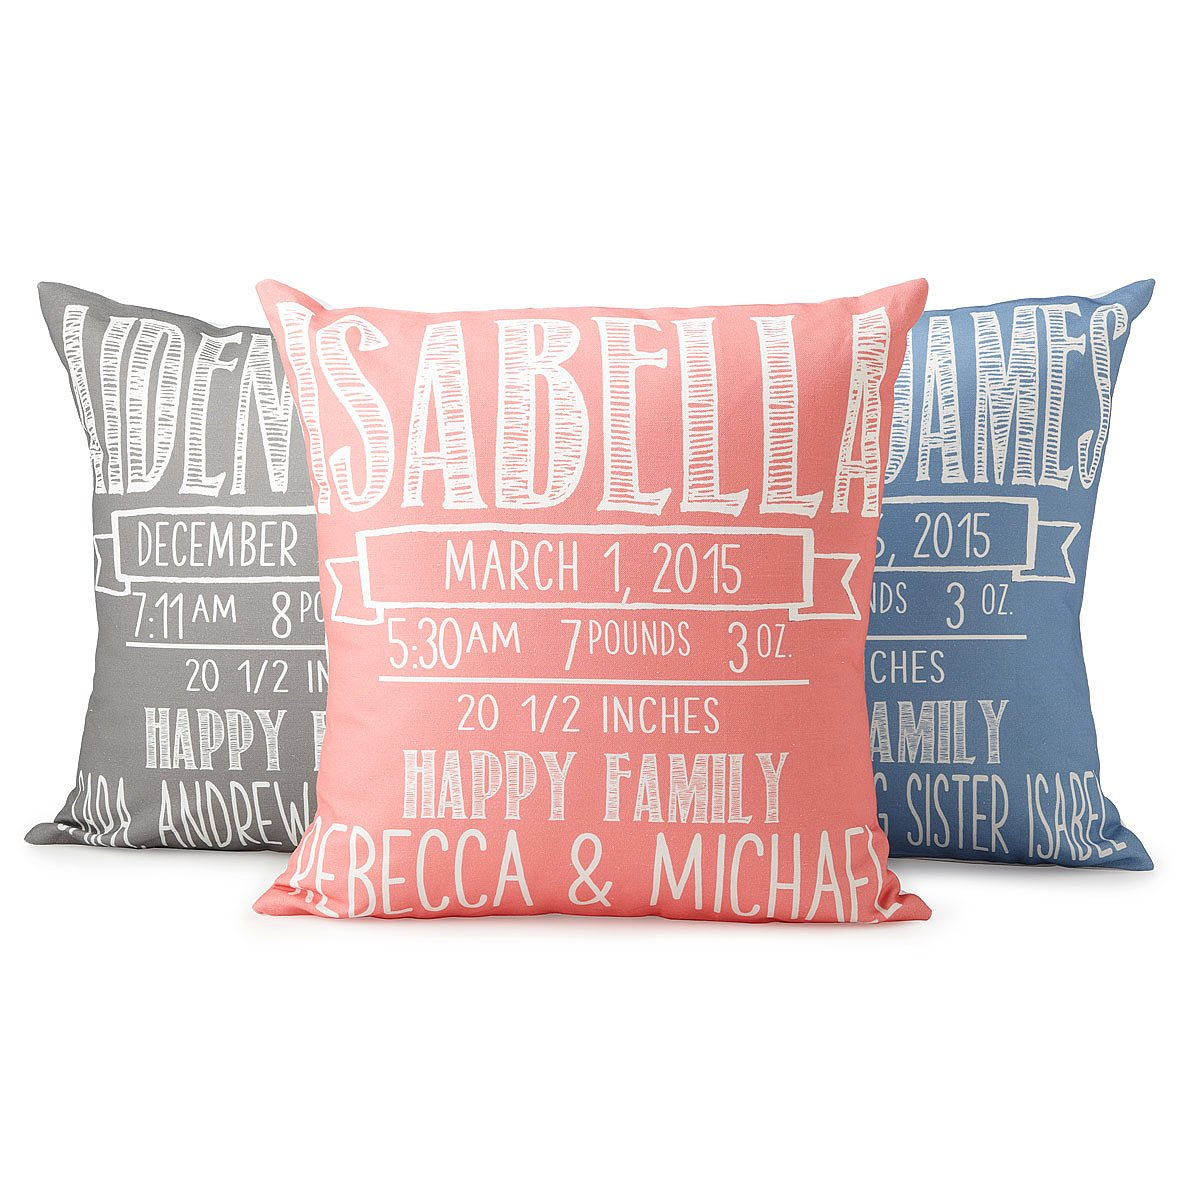 Chalkboard Birth Announcement Pillows – Gifts for Baby Announcement